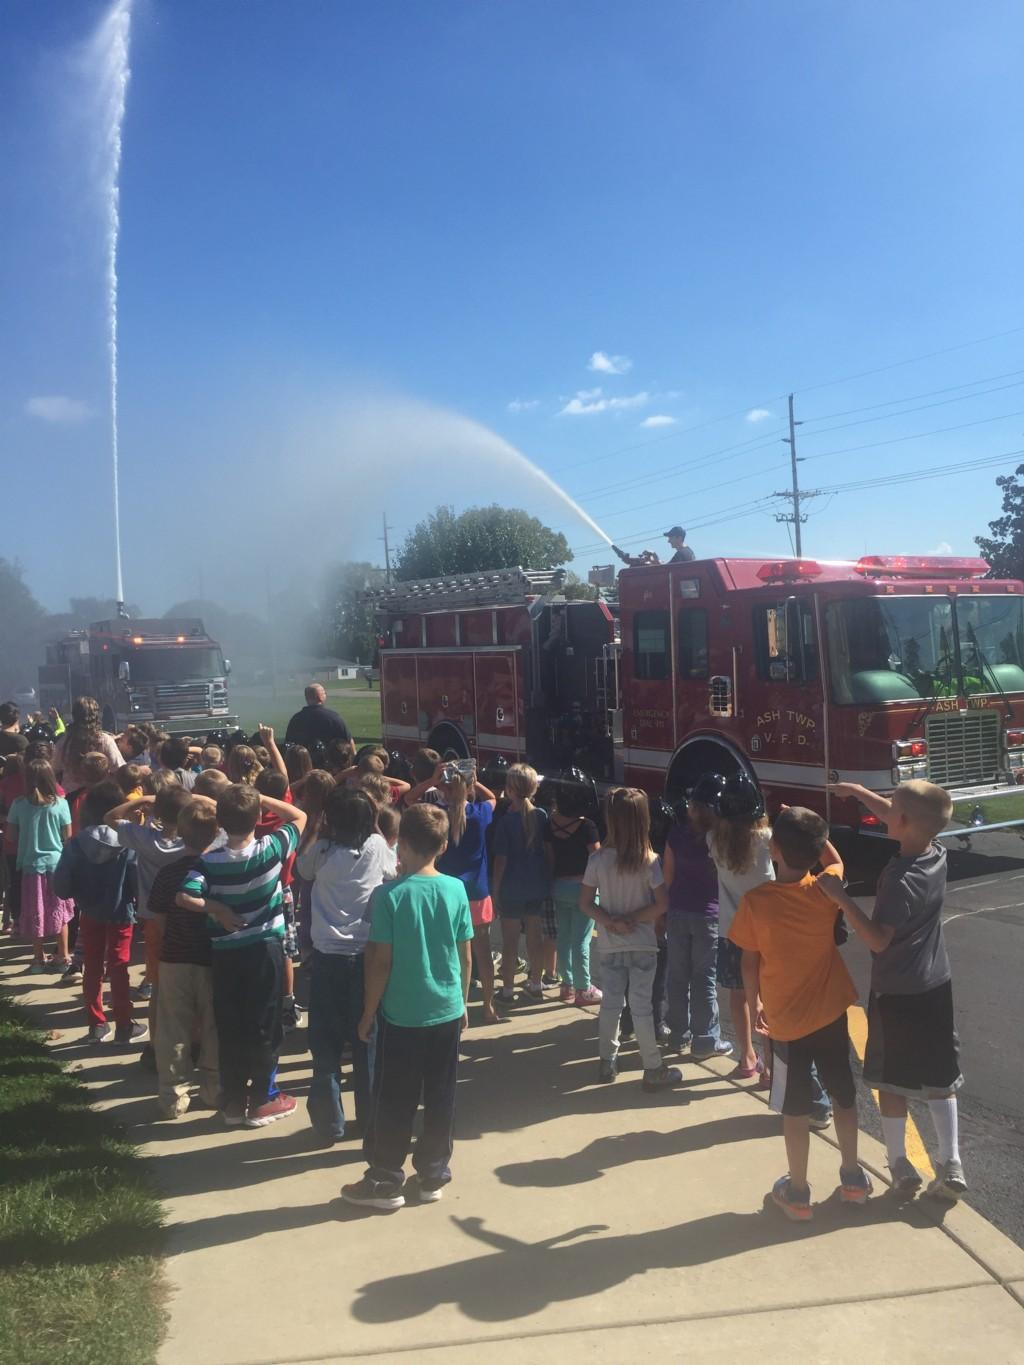 Fire Truck spraying water